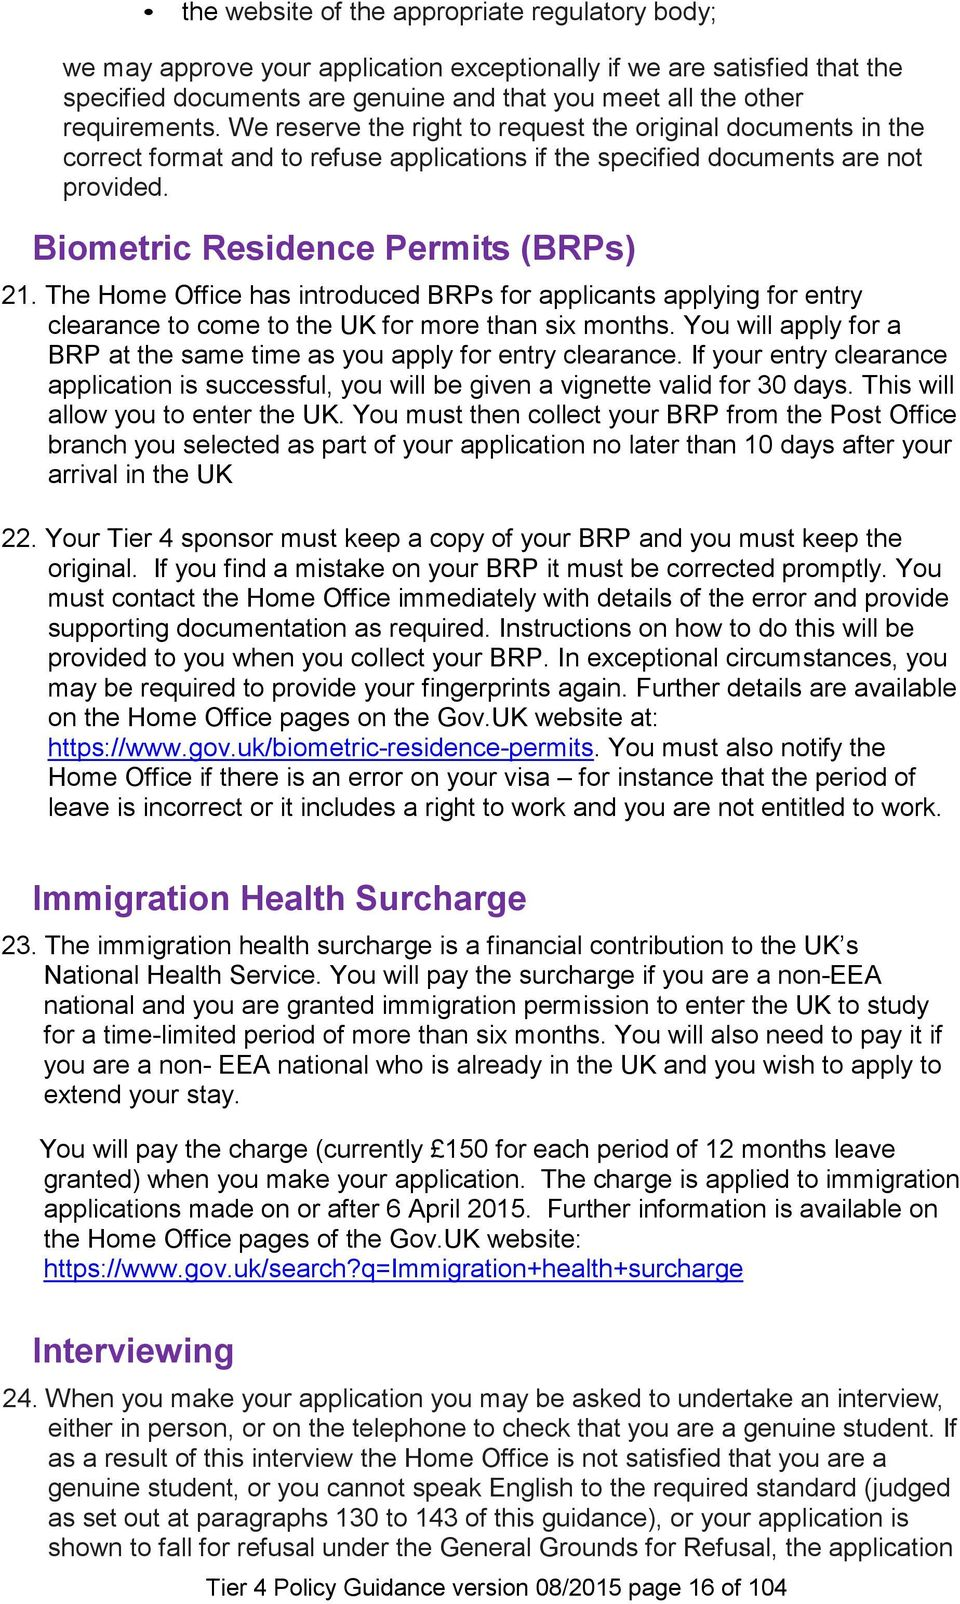 The Home Office has introduced BRPs for applicants applying for entry clearance to come to the UK for more than six months. You will apply for a BRP at the same time as you apply for entry clearance.